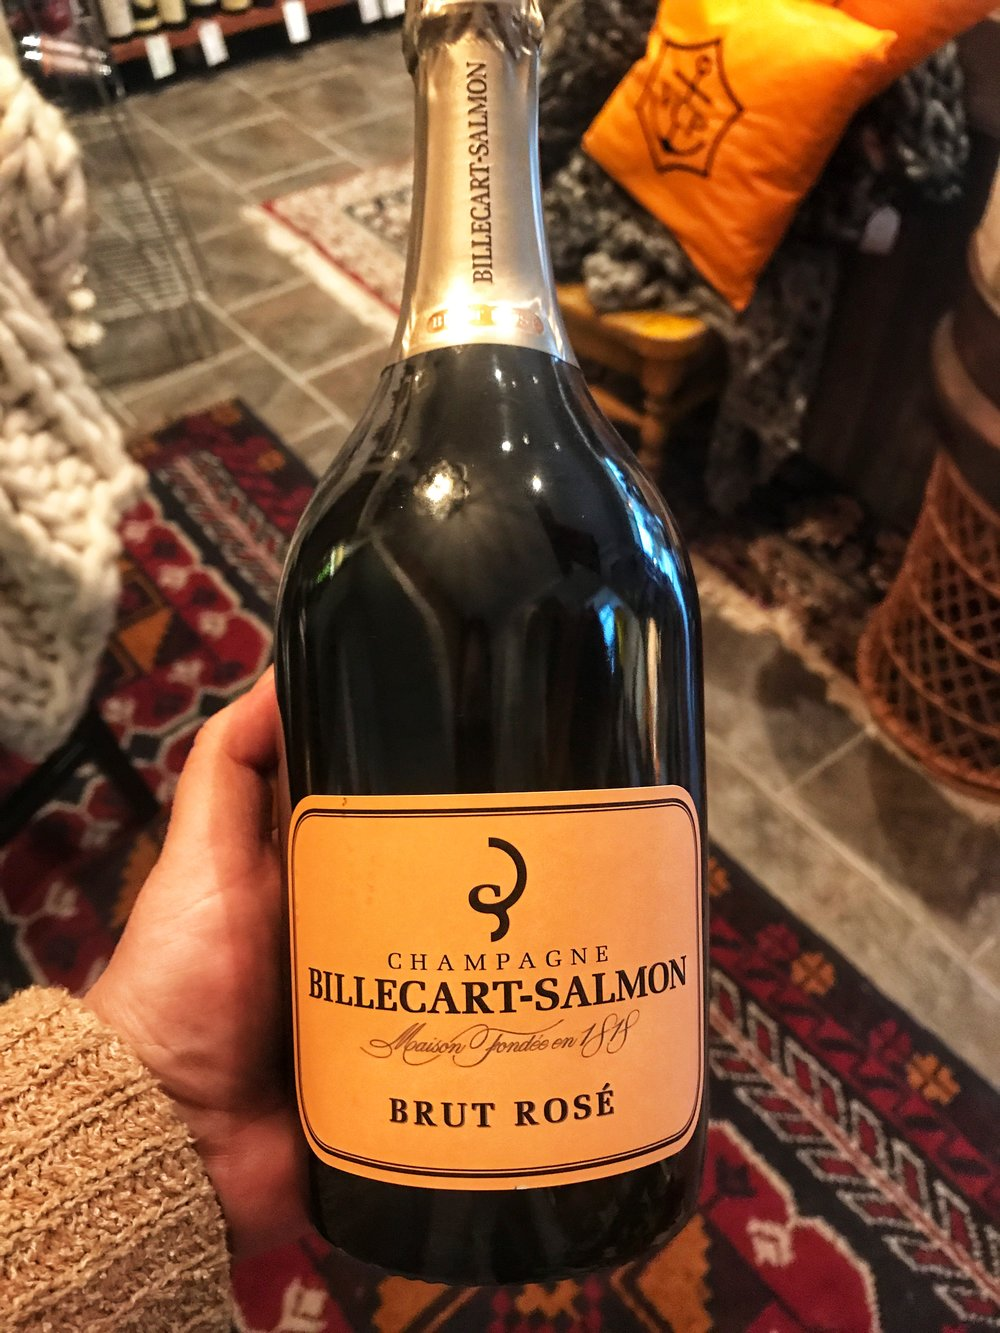 NV Billecart Salmon Brut Rosé: (Reg 99.99/Sale 85.99). Pure Luxury.   Pale, silvery-pink color, with a strong, frothy mousse. Pure and precise, with penetrating aromas of wild strawberry, raspberry, blood orange, kiwi, oyster shell and fresh lavender. Brisk on the palate, showing a range of red berry flavors accented by tangy rhubarb and bergamot notes, which ratchet up the refreshment factor.